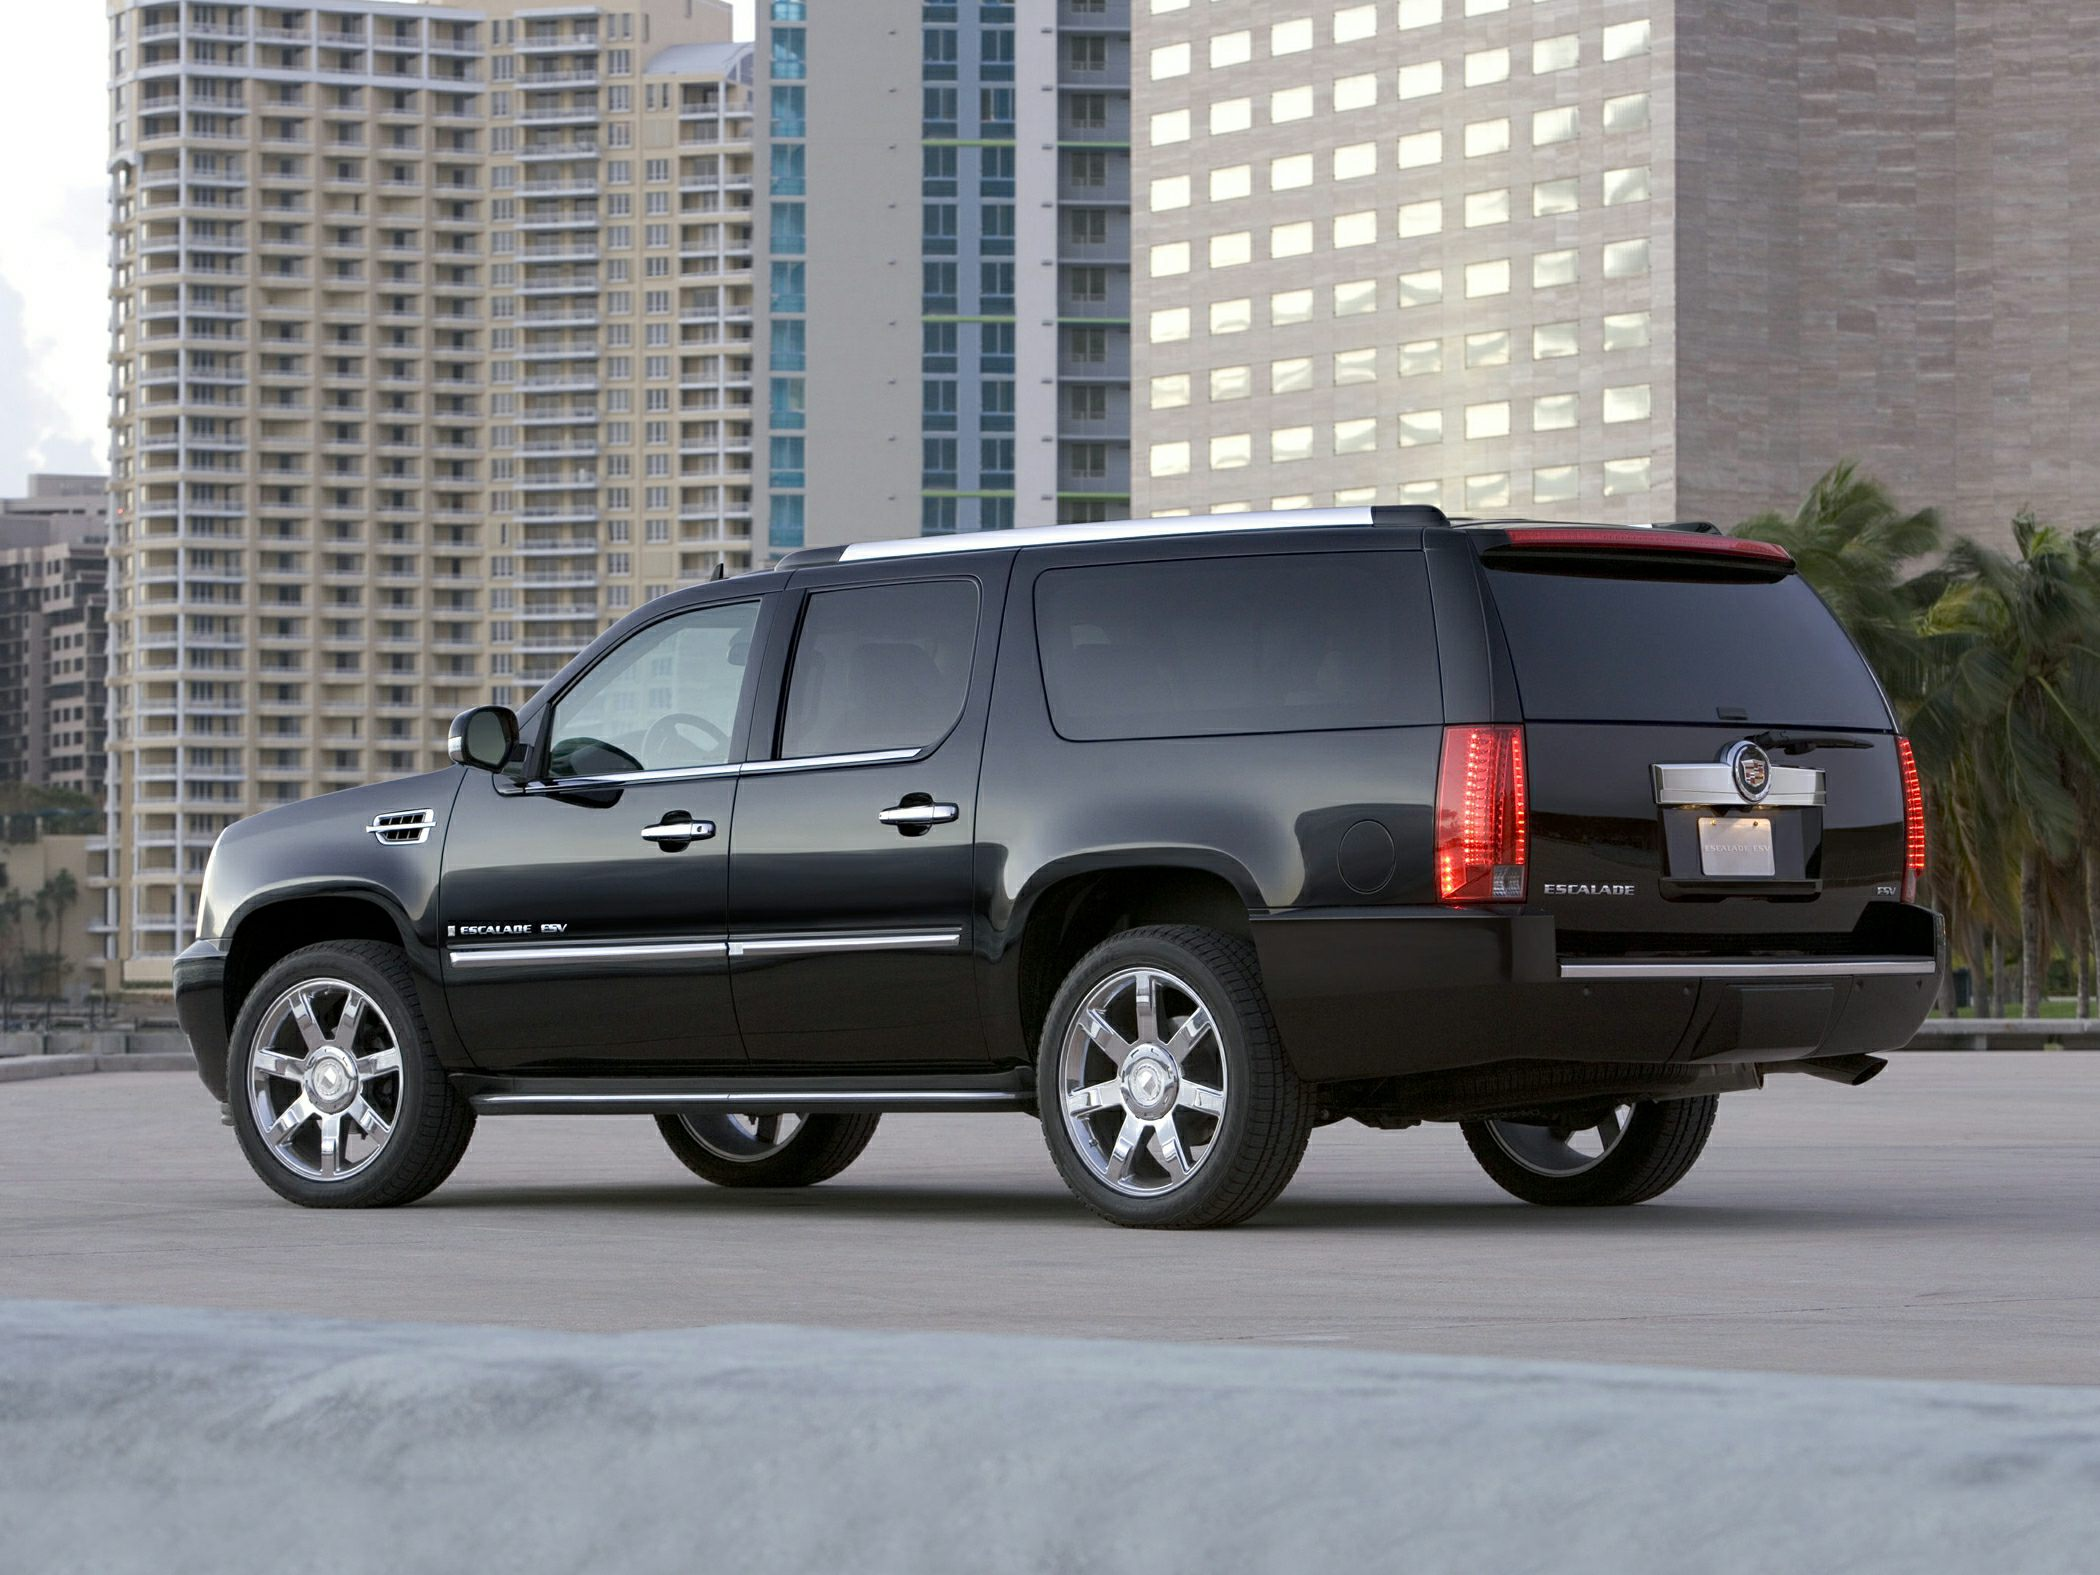 2013 Cadillac Escalade ESV Premium Black 342 Rear Axle Ratio22 x 9 7-Spoke Ultra-Bright Alumin